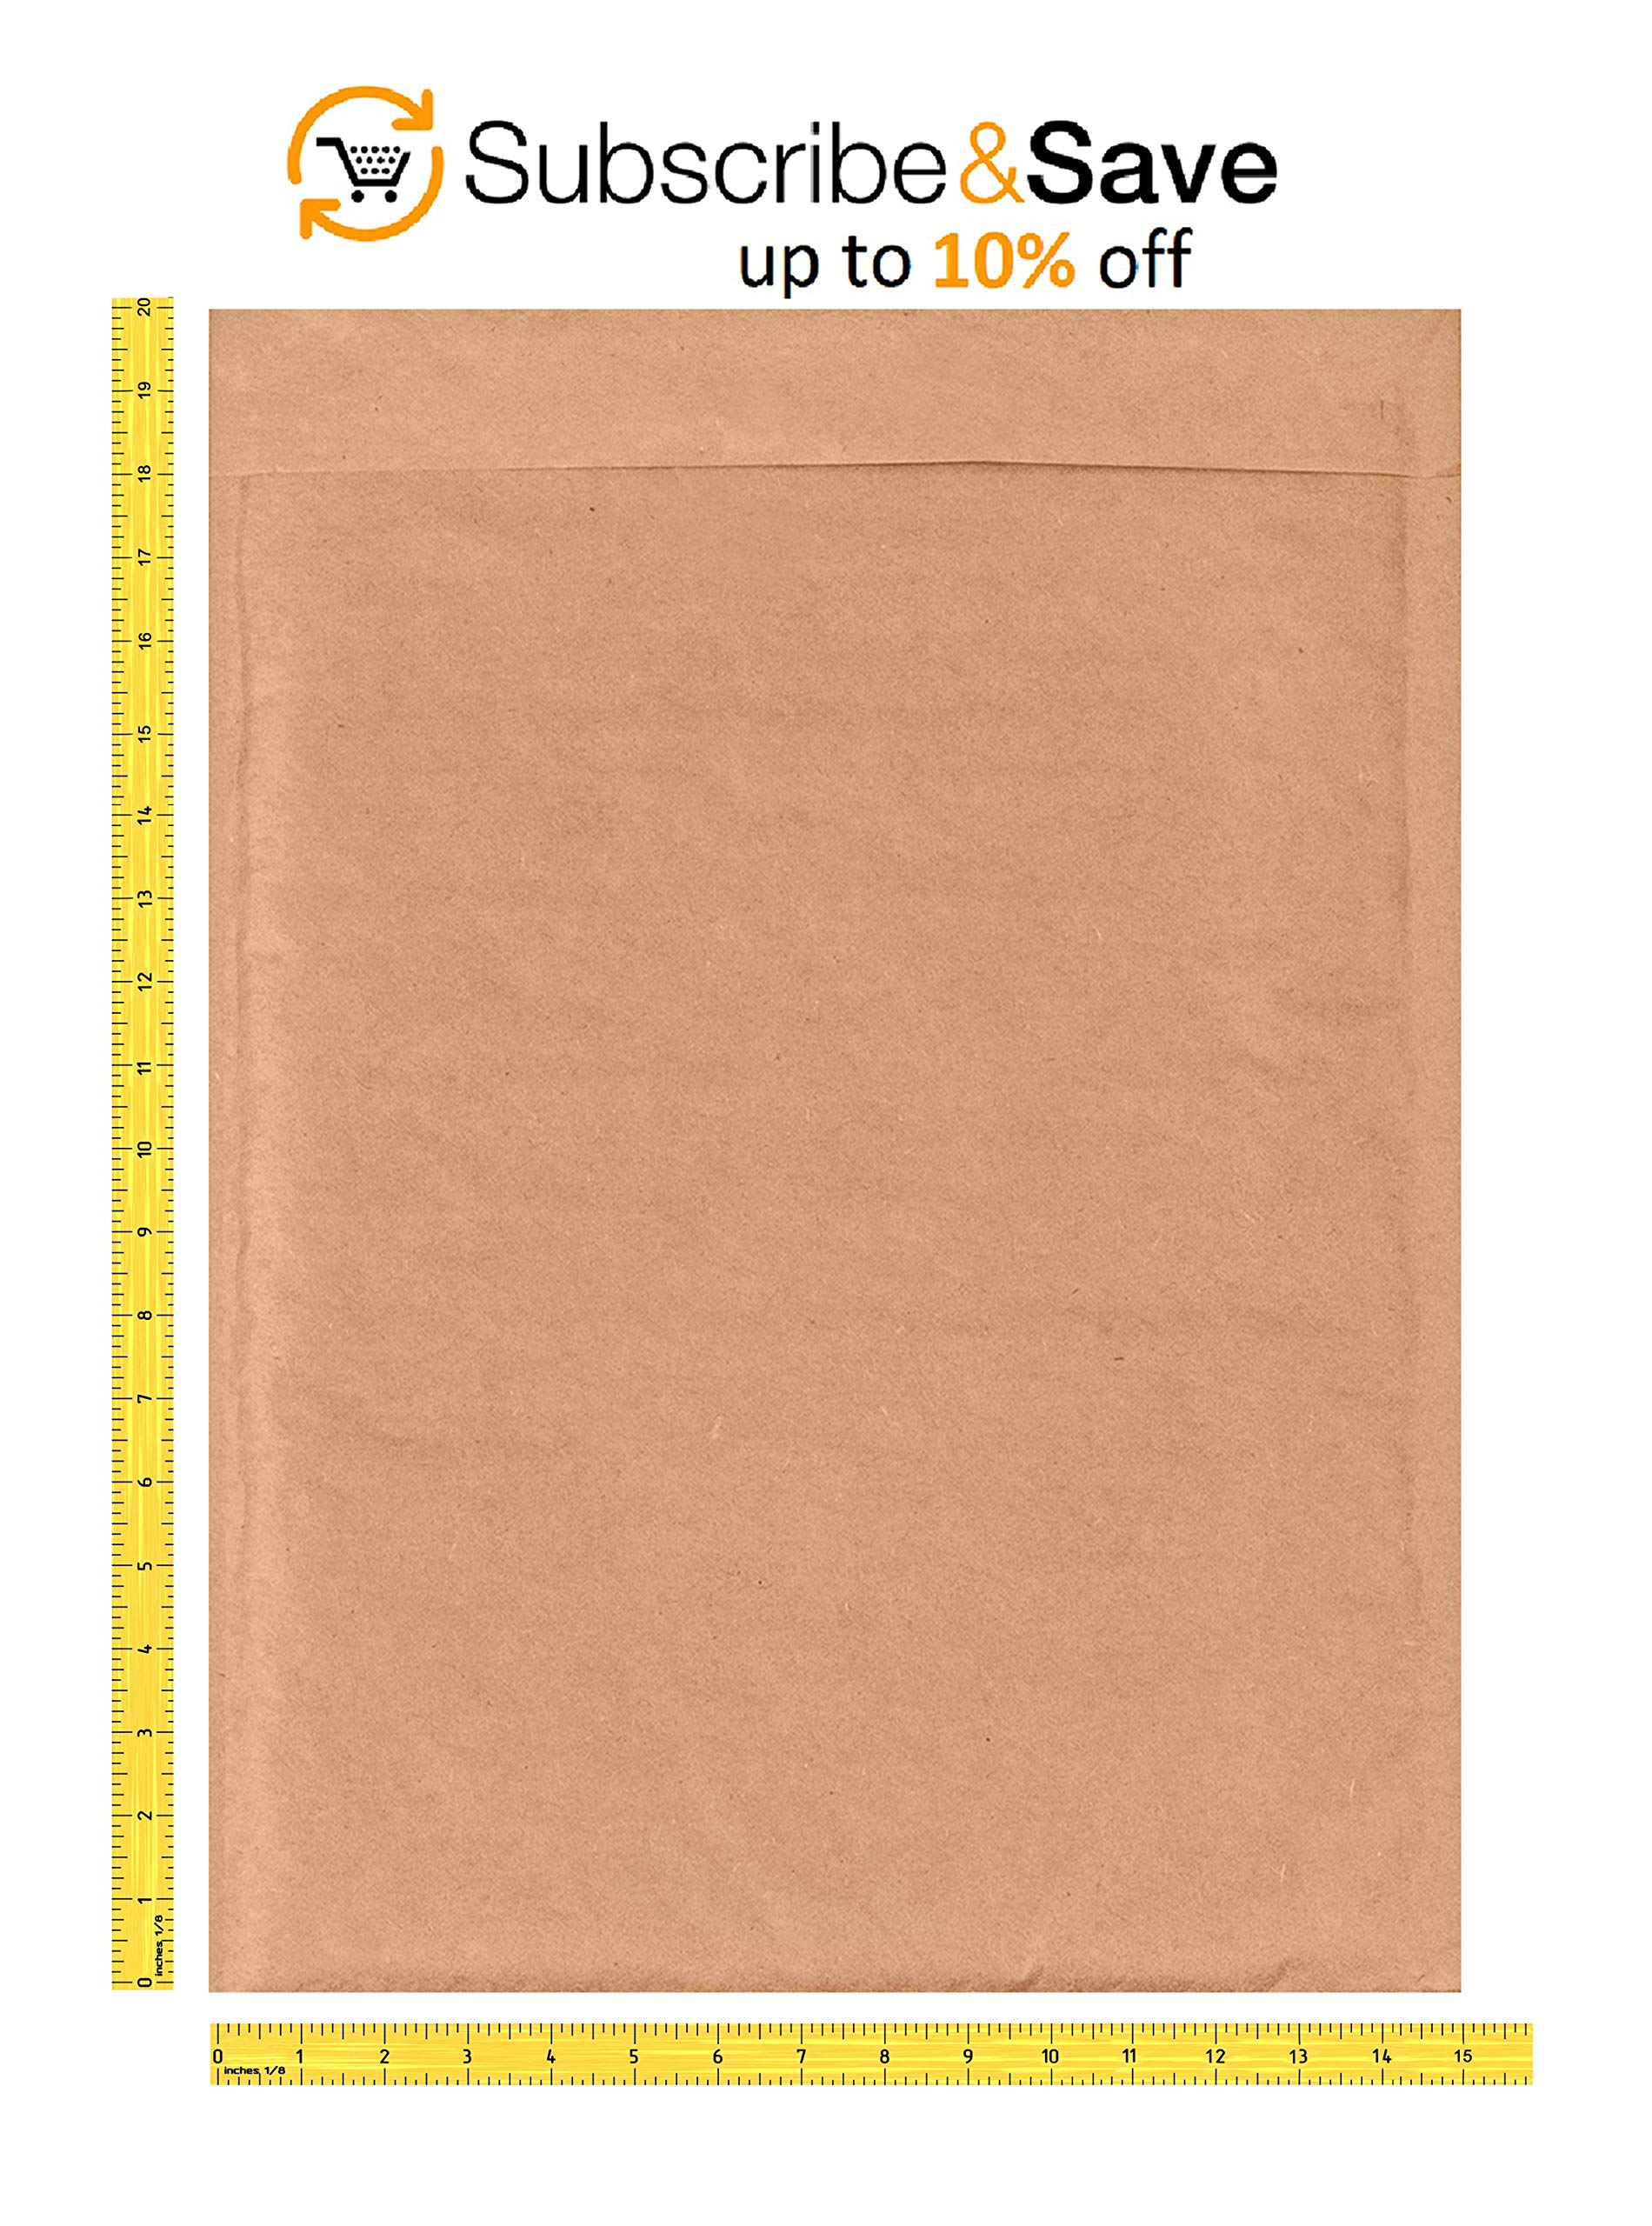 AMIFF Natural Kraft bubble mailers 14 x 20 Brown Padded envelopes 14 x 20 by Amiff. Pack of 10 Kraft Paper cushion envelopes. Exterior size 15 x 20 (15 x 20). Peel and Seal. Mailing, shipping. by Amiff (Image #3)